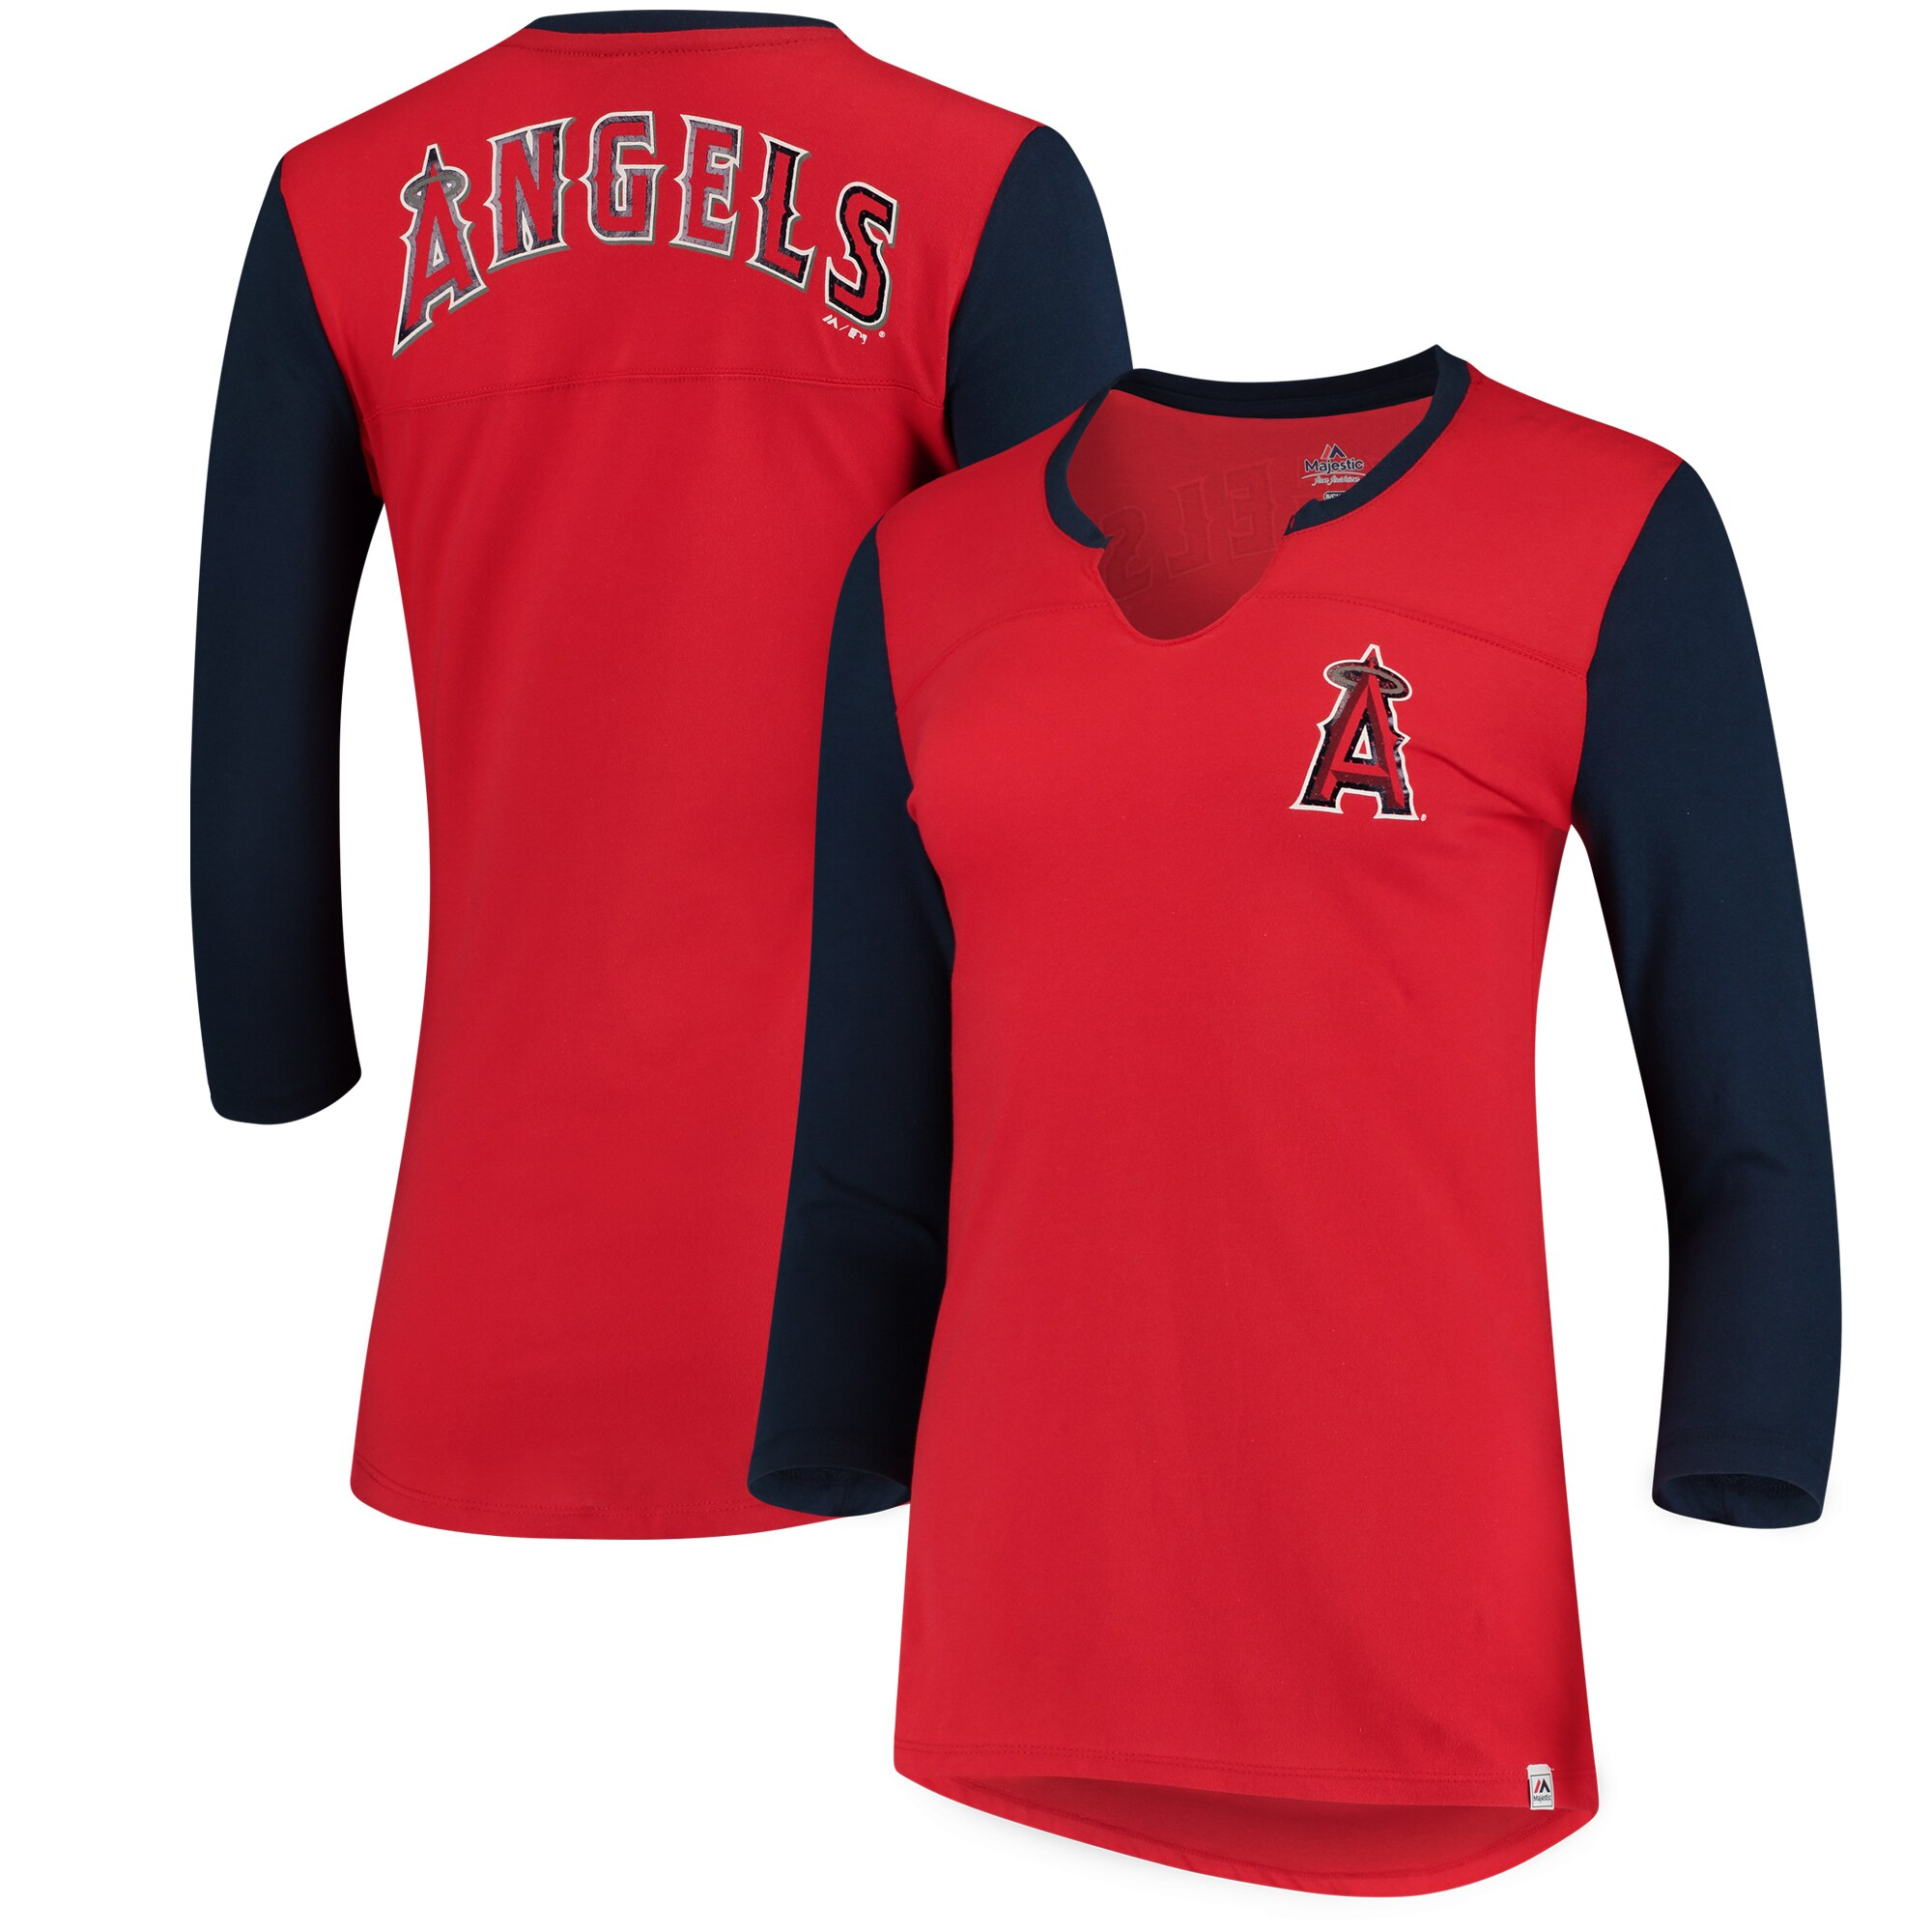 Los Angeles Angels Majestic Women's Above Average Three-Quarter Sleeve V-Notch T-Shirt - Red/Navy